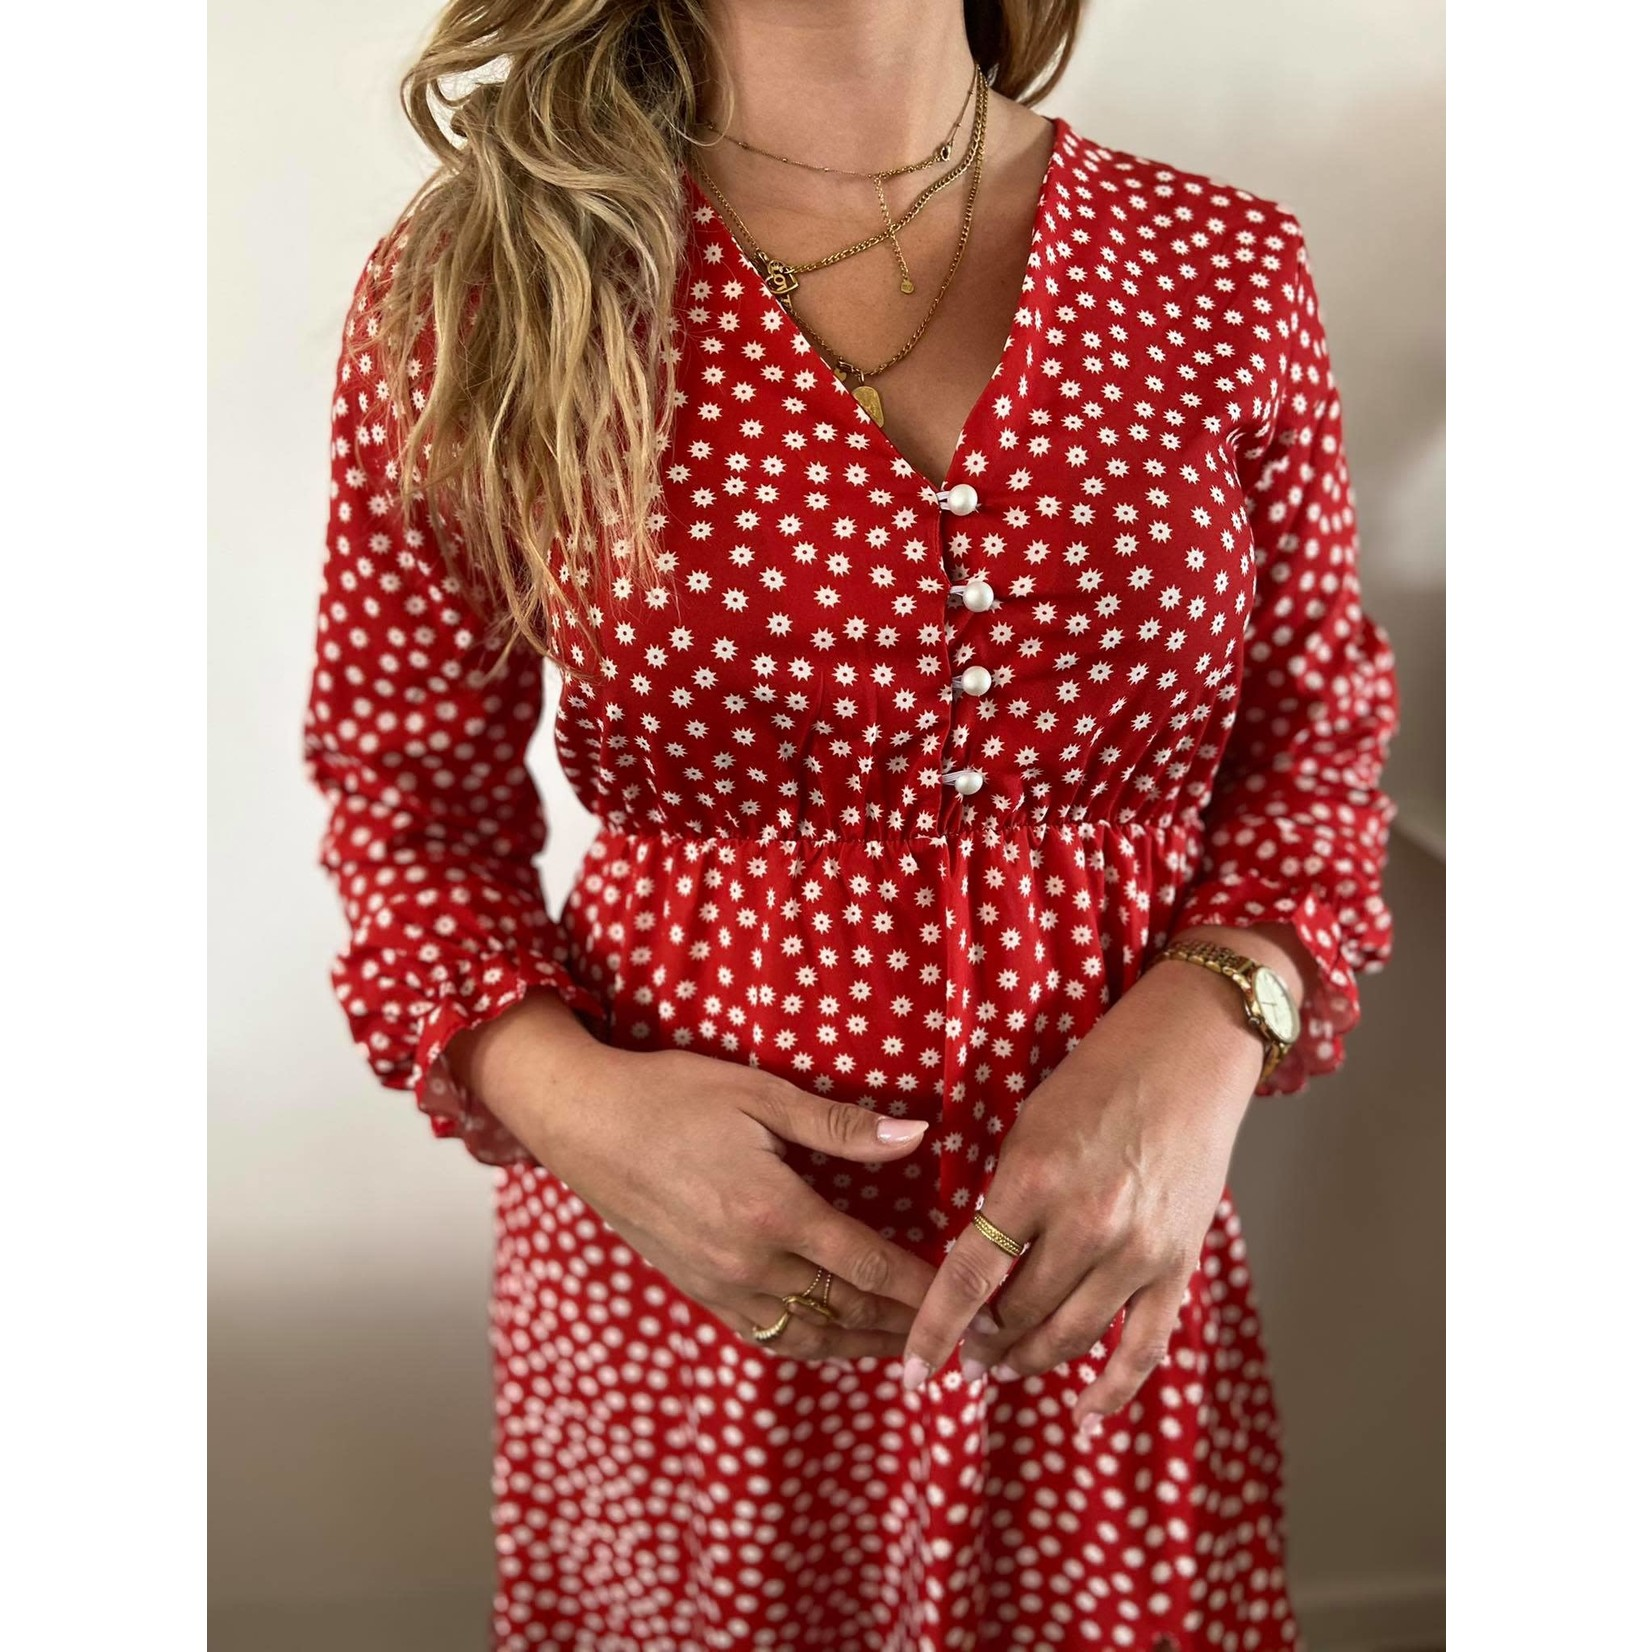 Ester dress red white flower TU